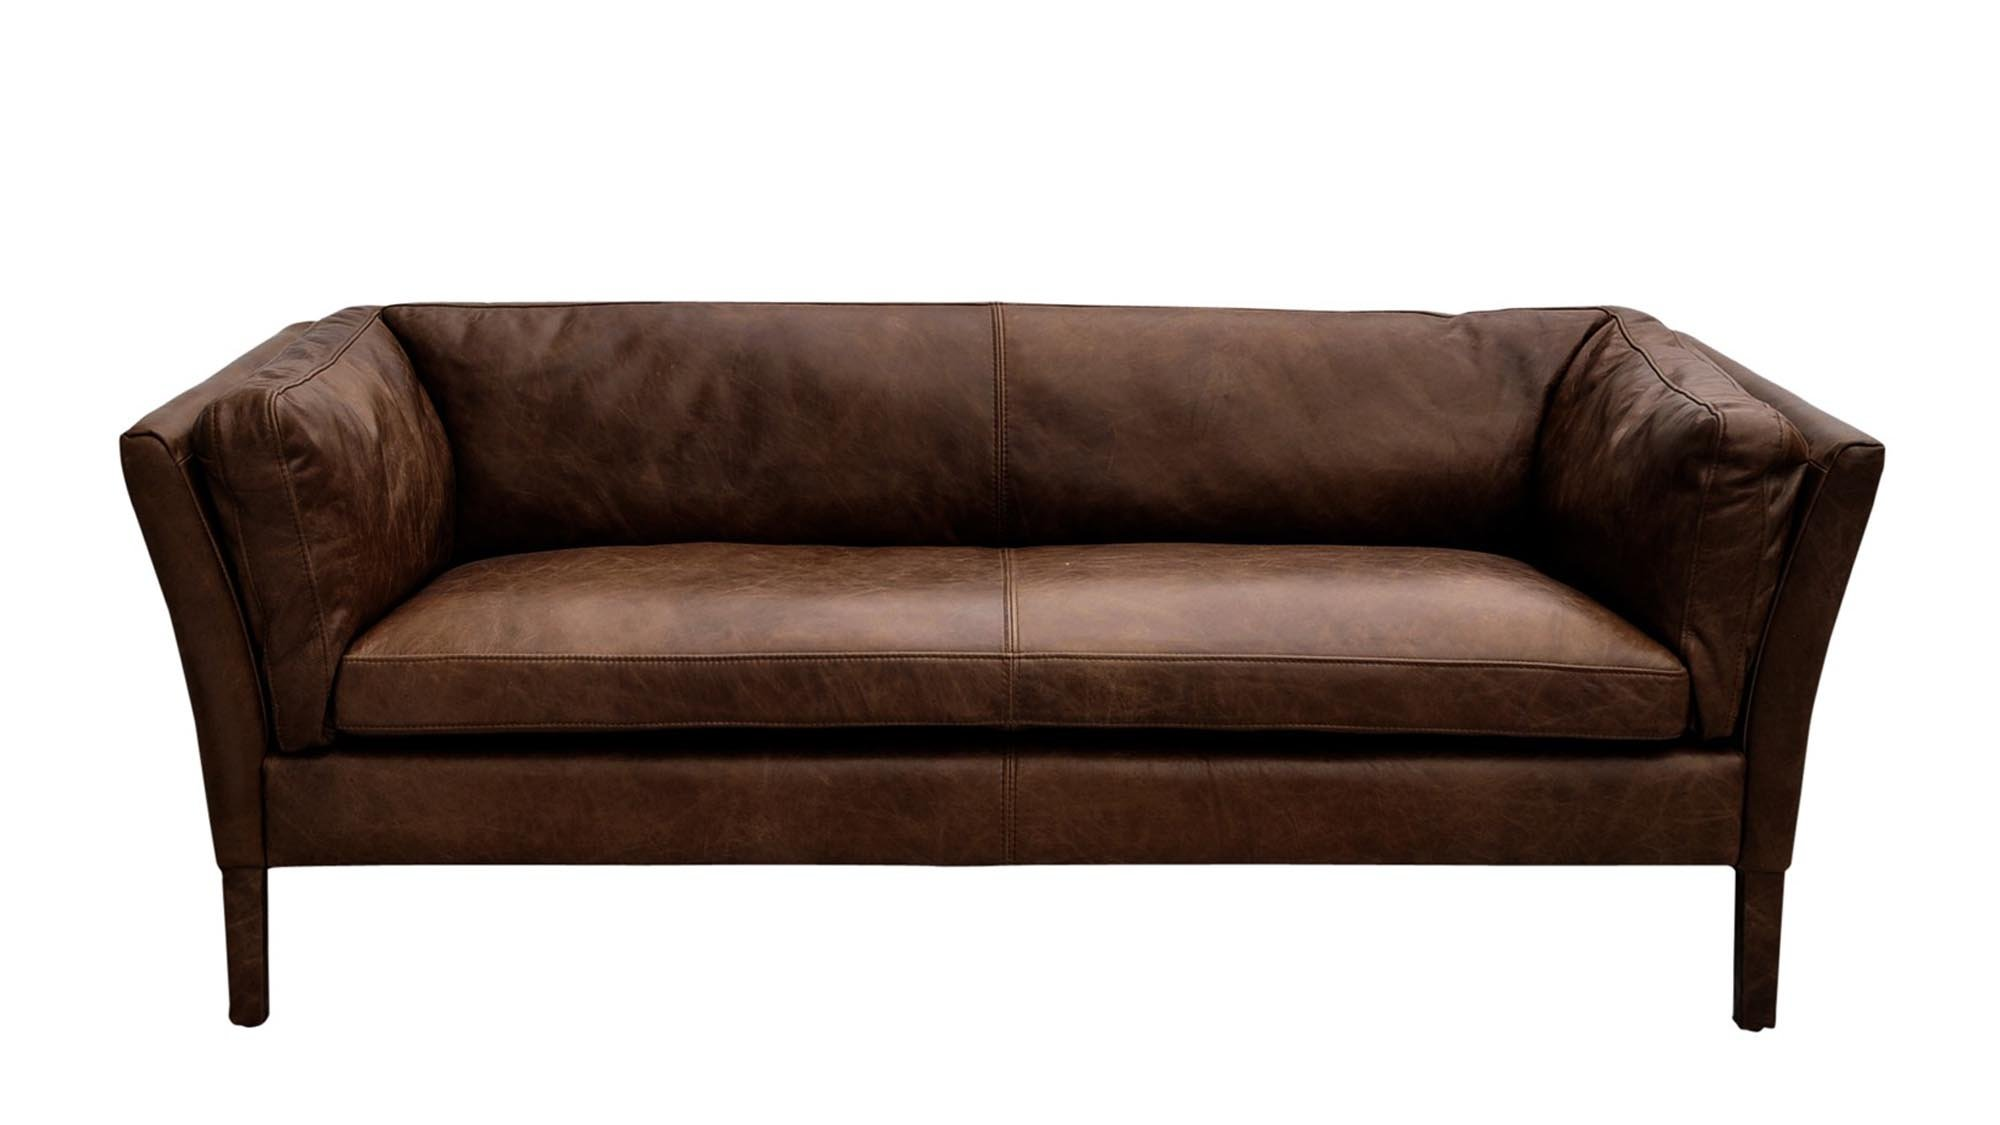 best sofa 2018 find the perfect sofa for your living room from rh expertreviews co uk best quality leather sofas brands uk best buy leather sofas uk